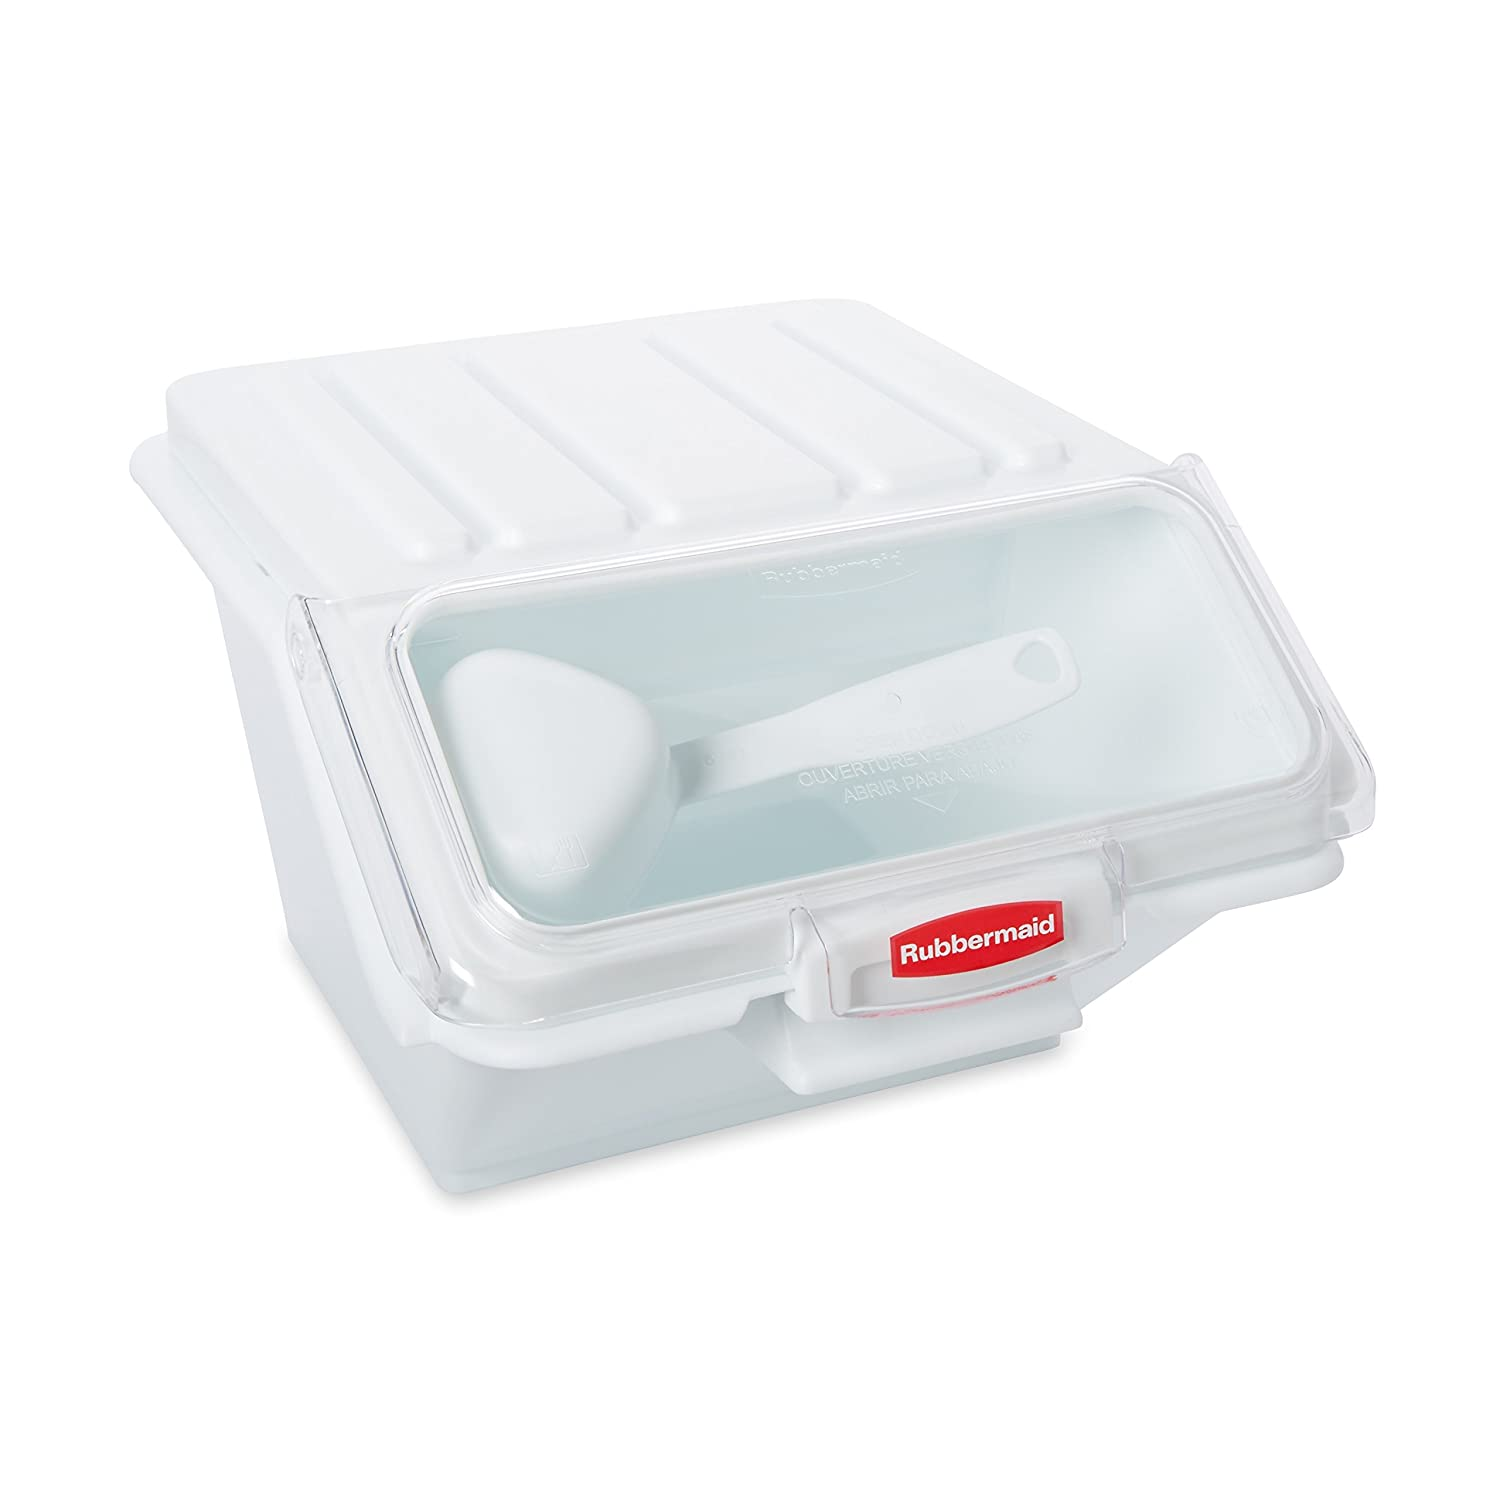 Rubbermaid Commercial ProSave Shelf-Storage Ingredient Bin with Scoop, Plastic, Stackable, 40-Cup Capacity, White, FG9G6000WHT